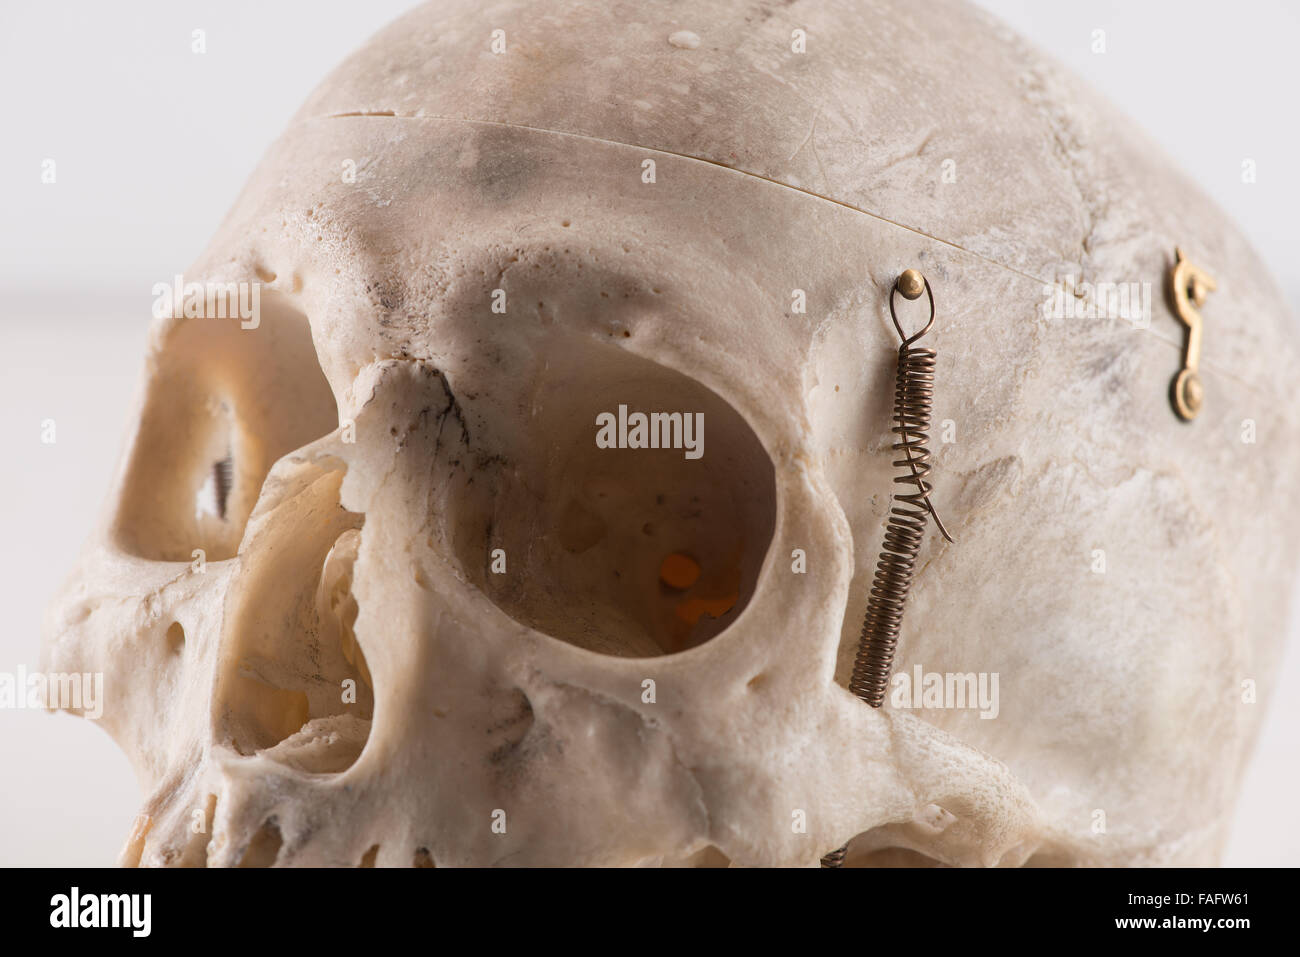 Anatomy And Physiology Of Real Human Skull Cranium For Scientific